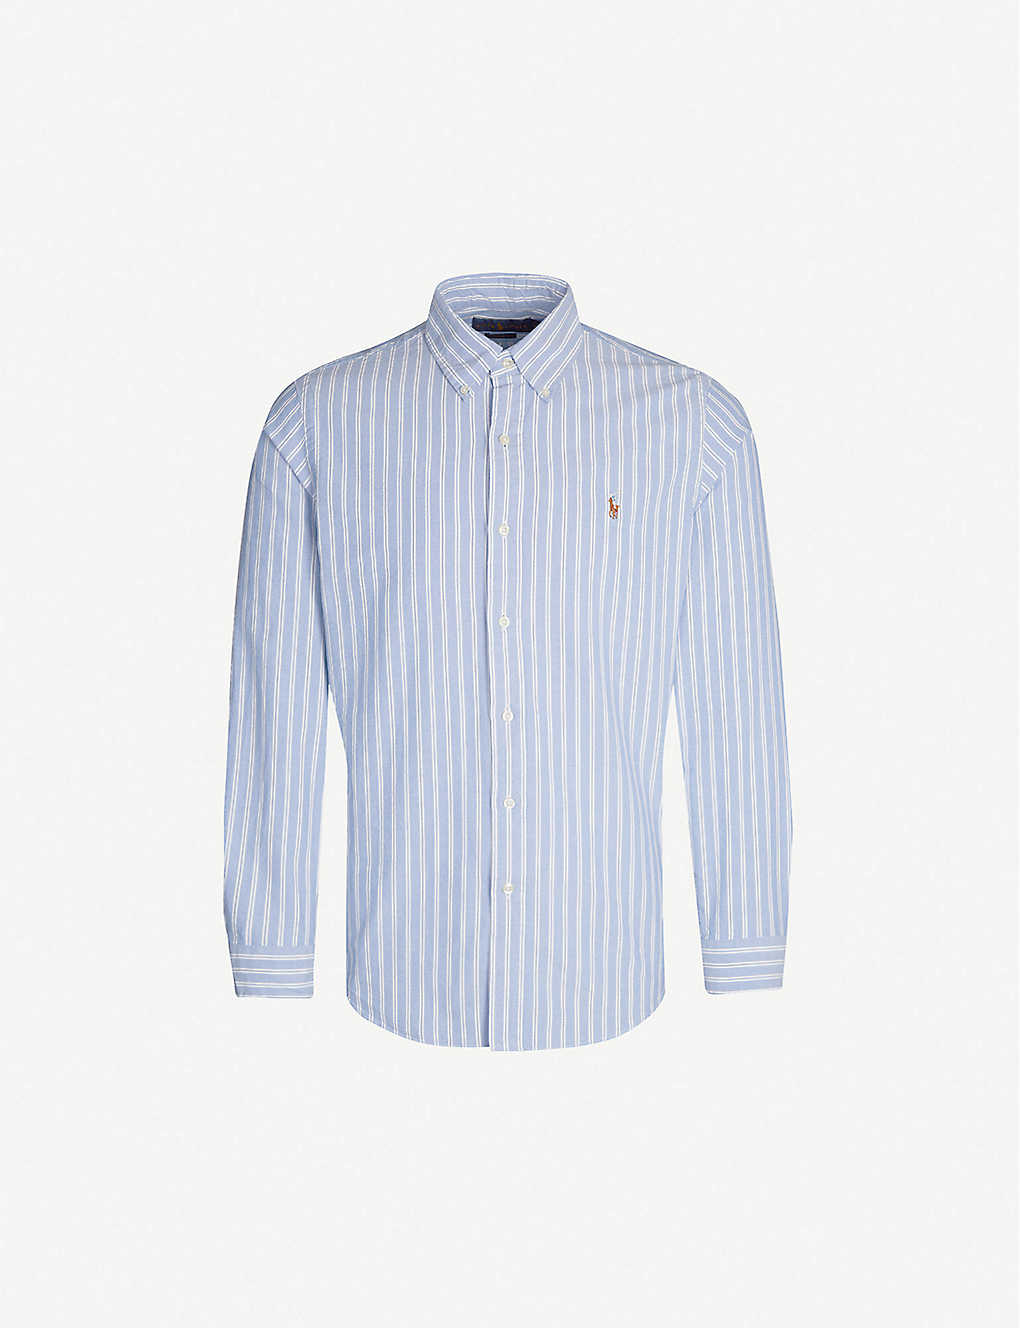 cdd2ebeda Style For You - ralph lauren striped oxford shirt